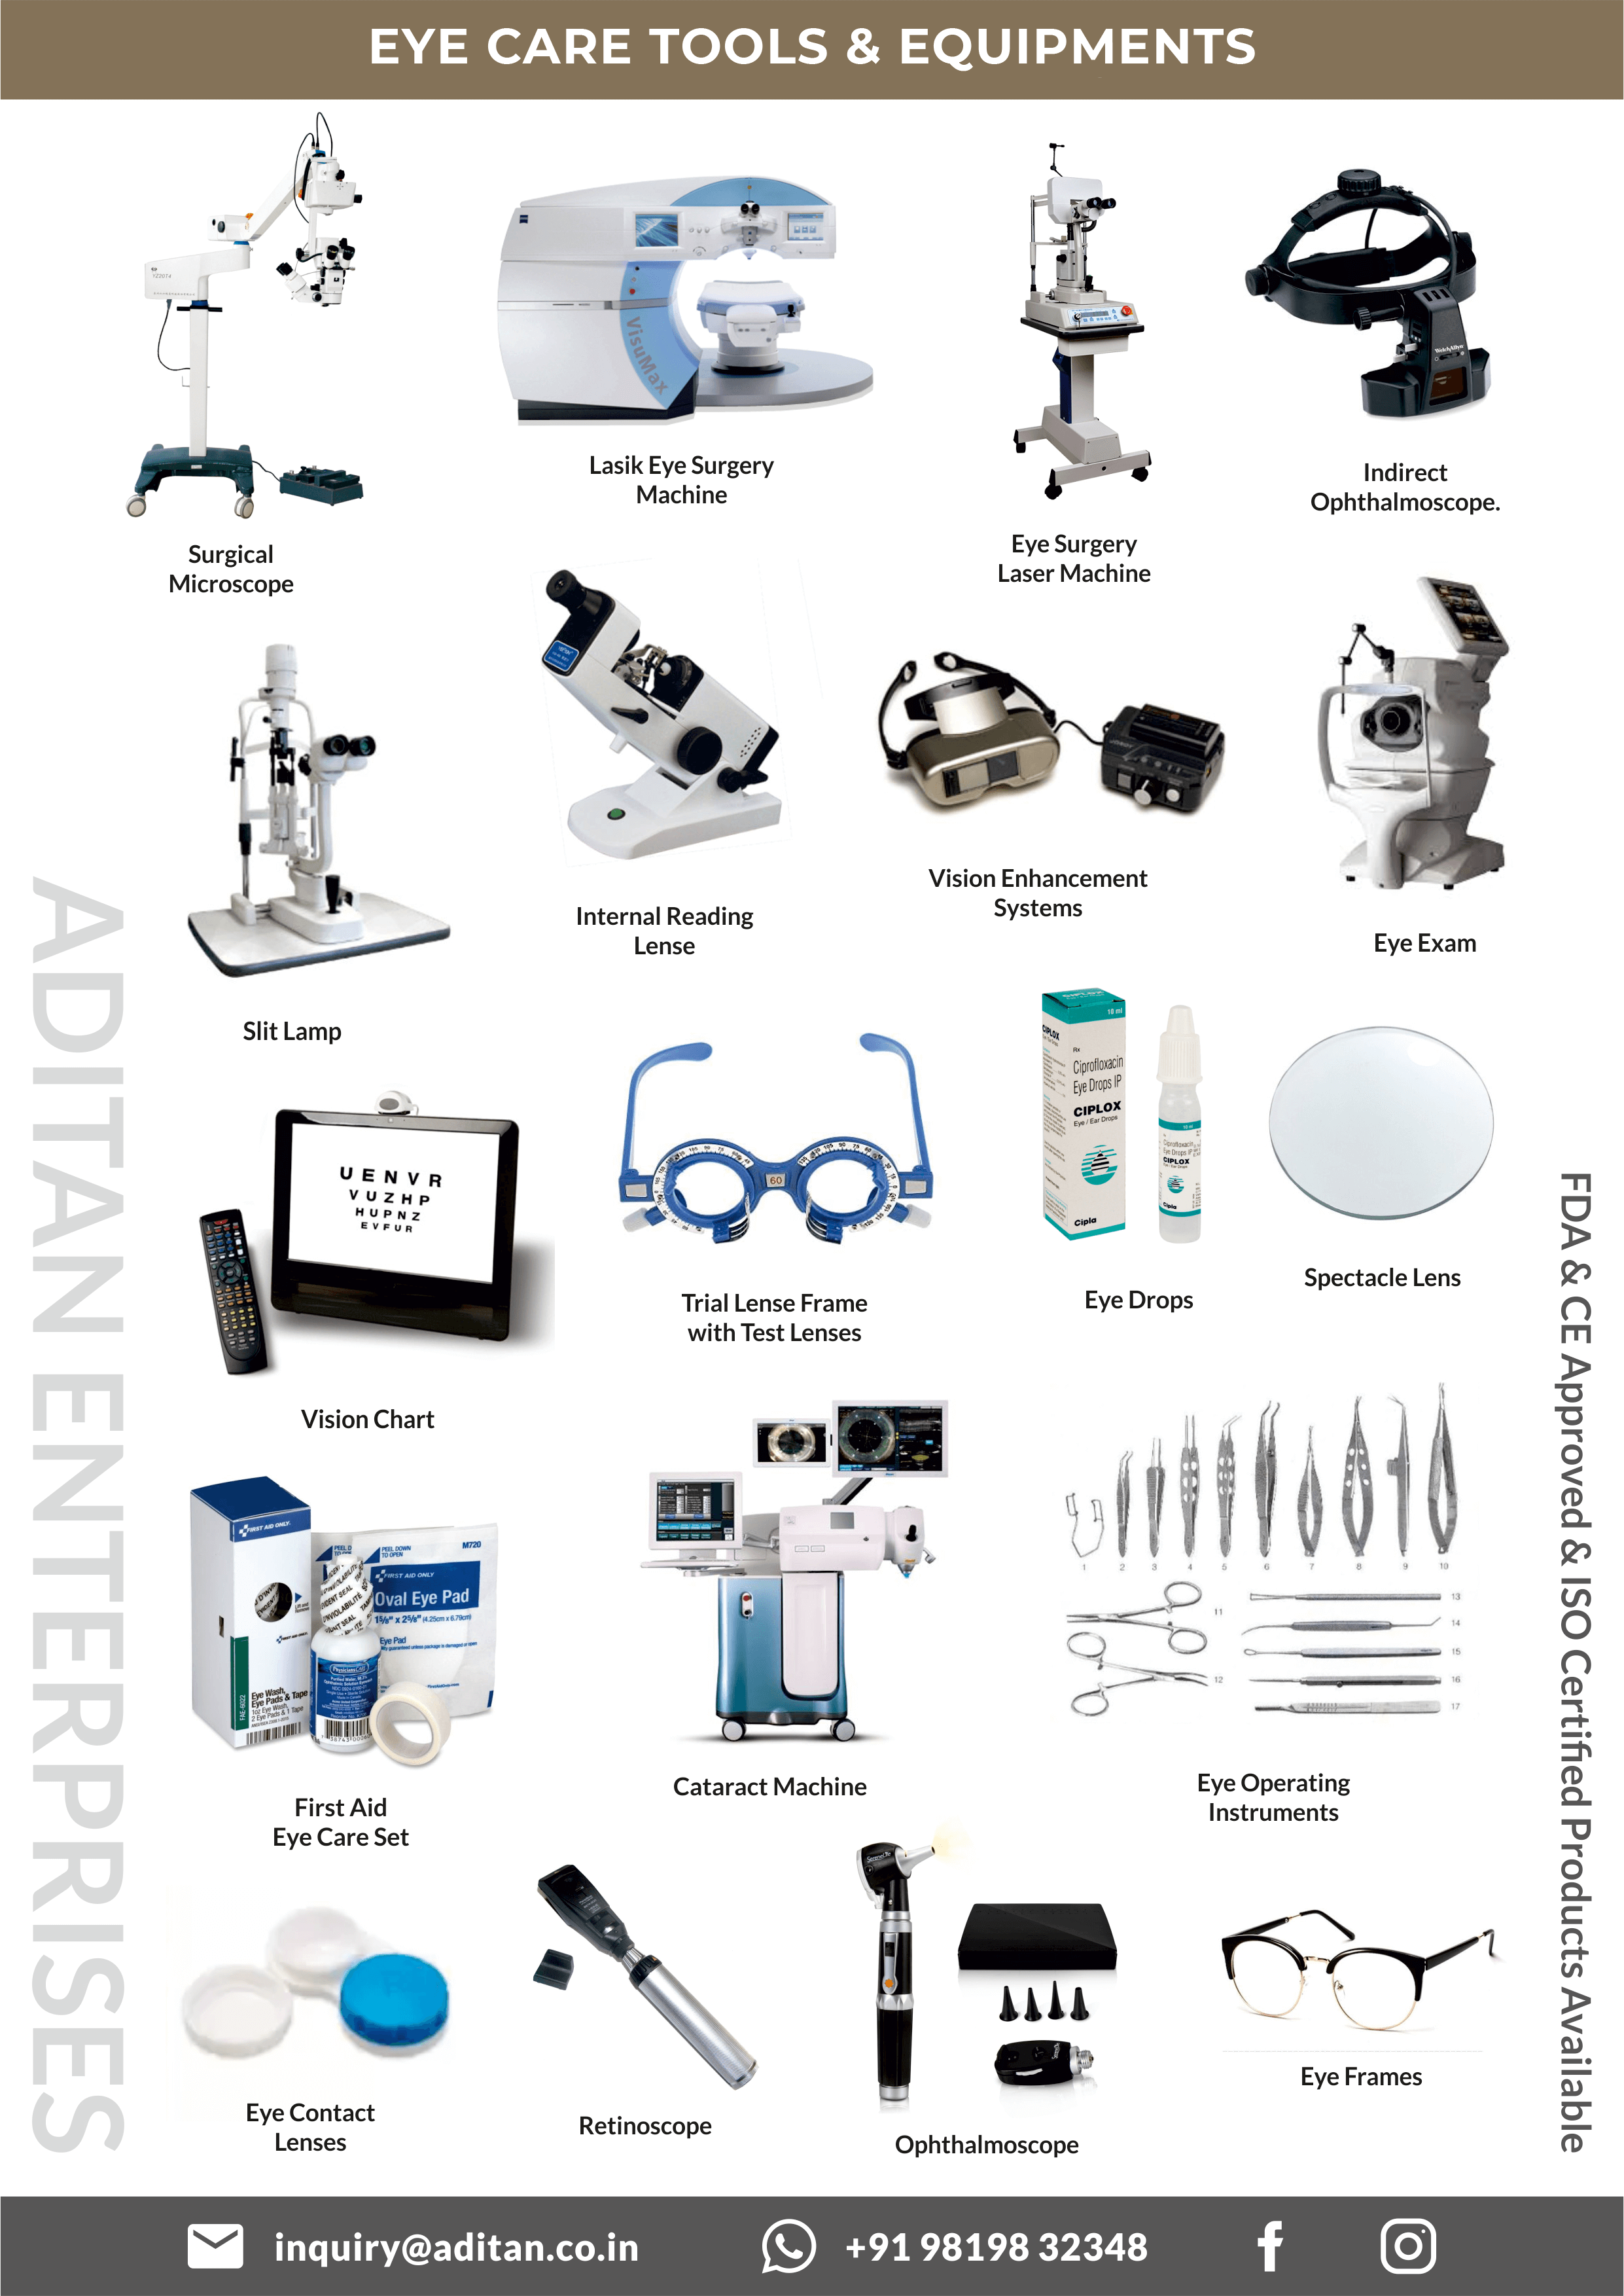 Eye-Care-Tools-&-Equipments